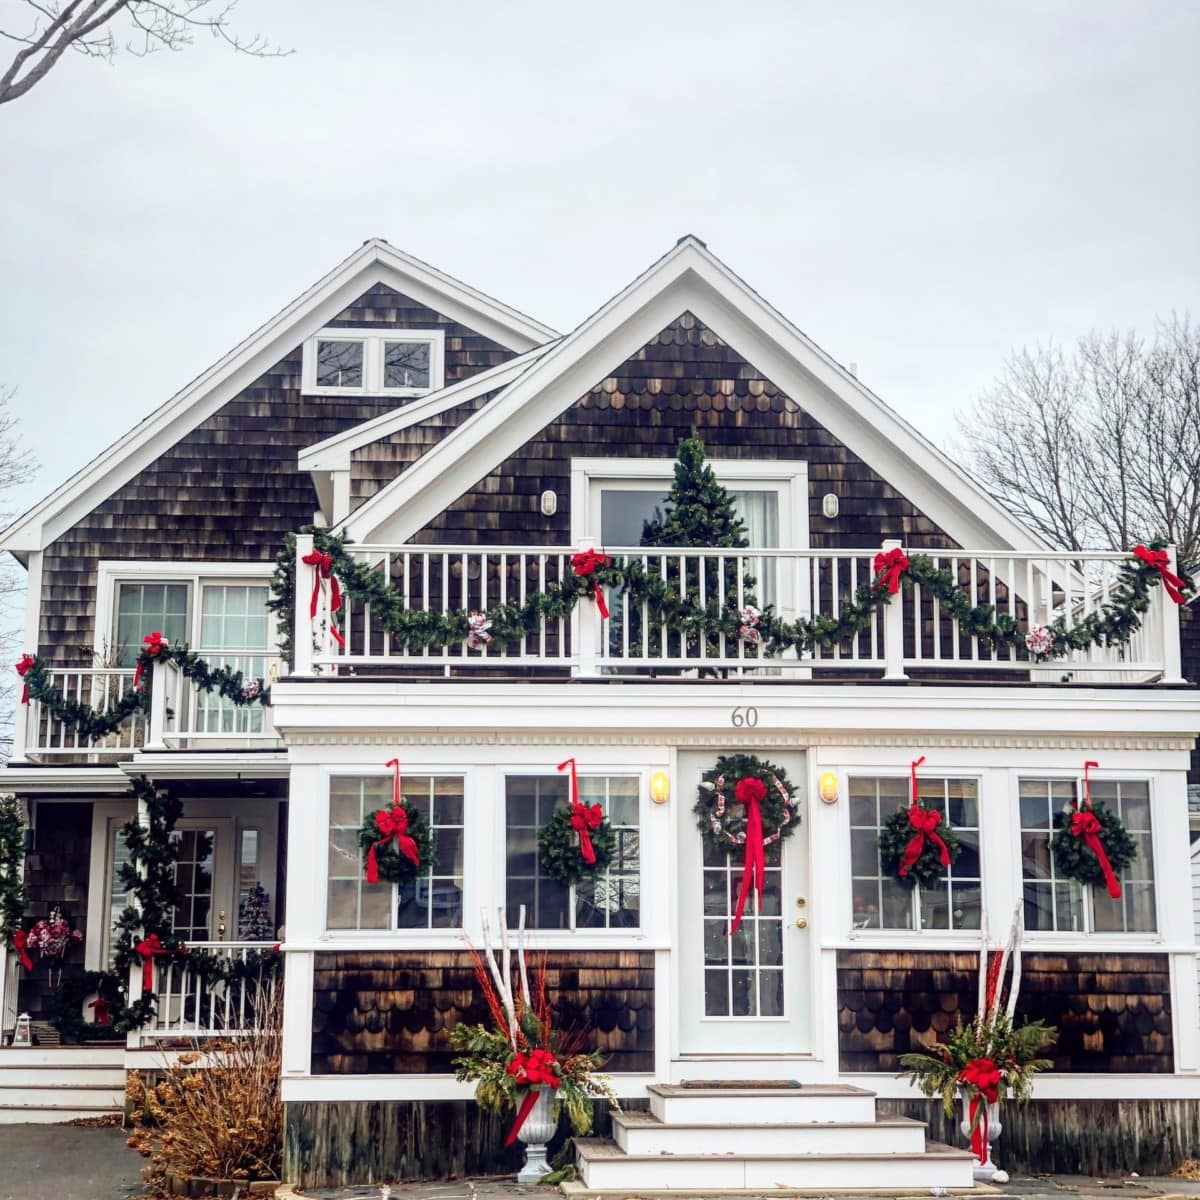 Be sure to decorate the exterior of your home if you're selling during the holidays